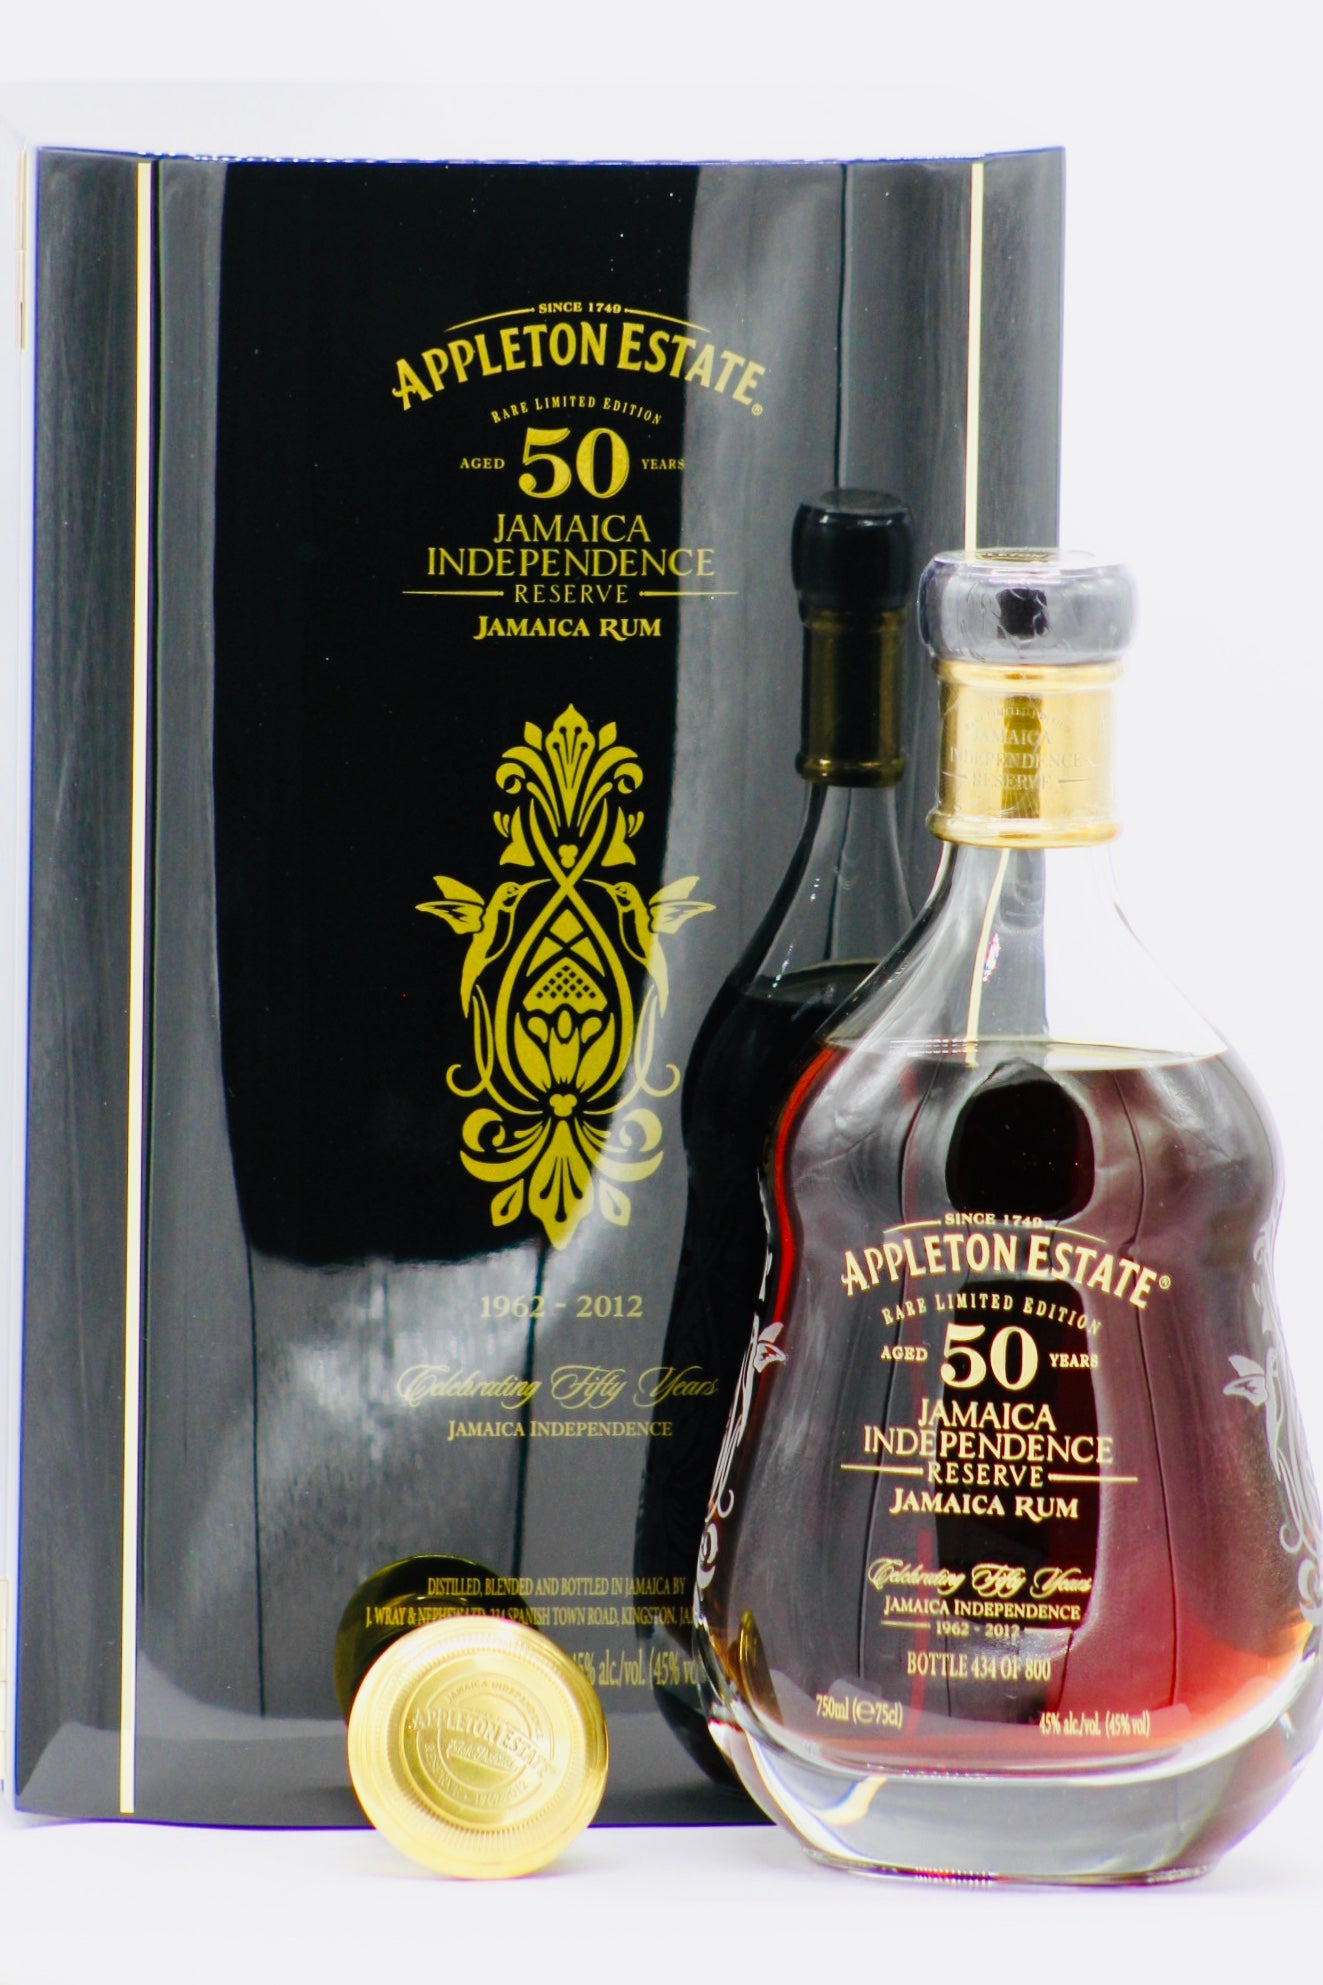 Appleton Estate 50 Year Old Rare Limited Edition Jamaican Rum